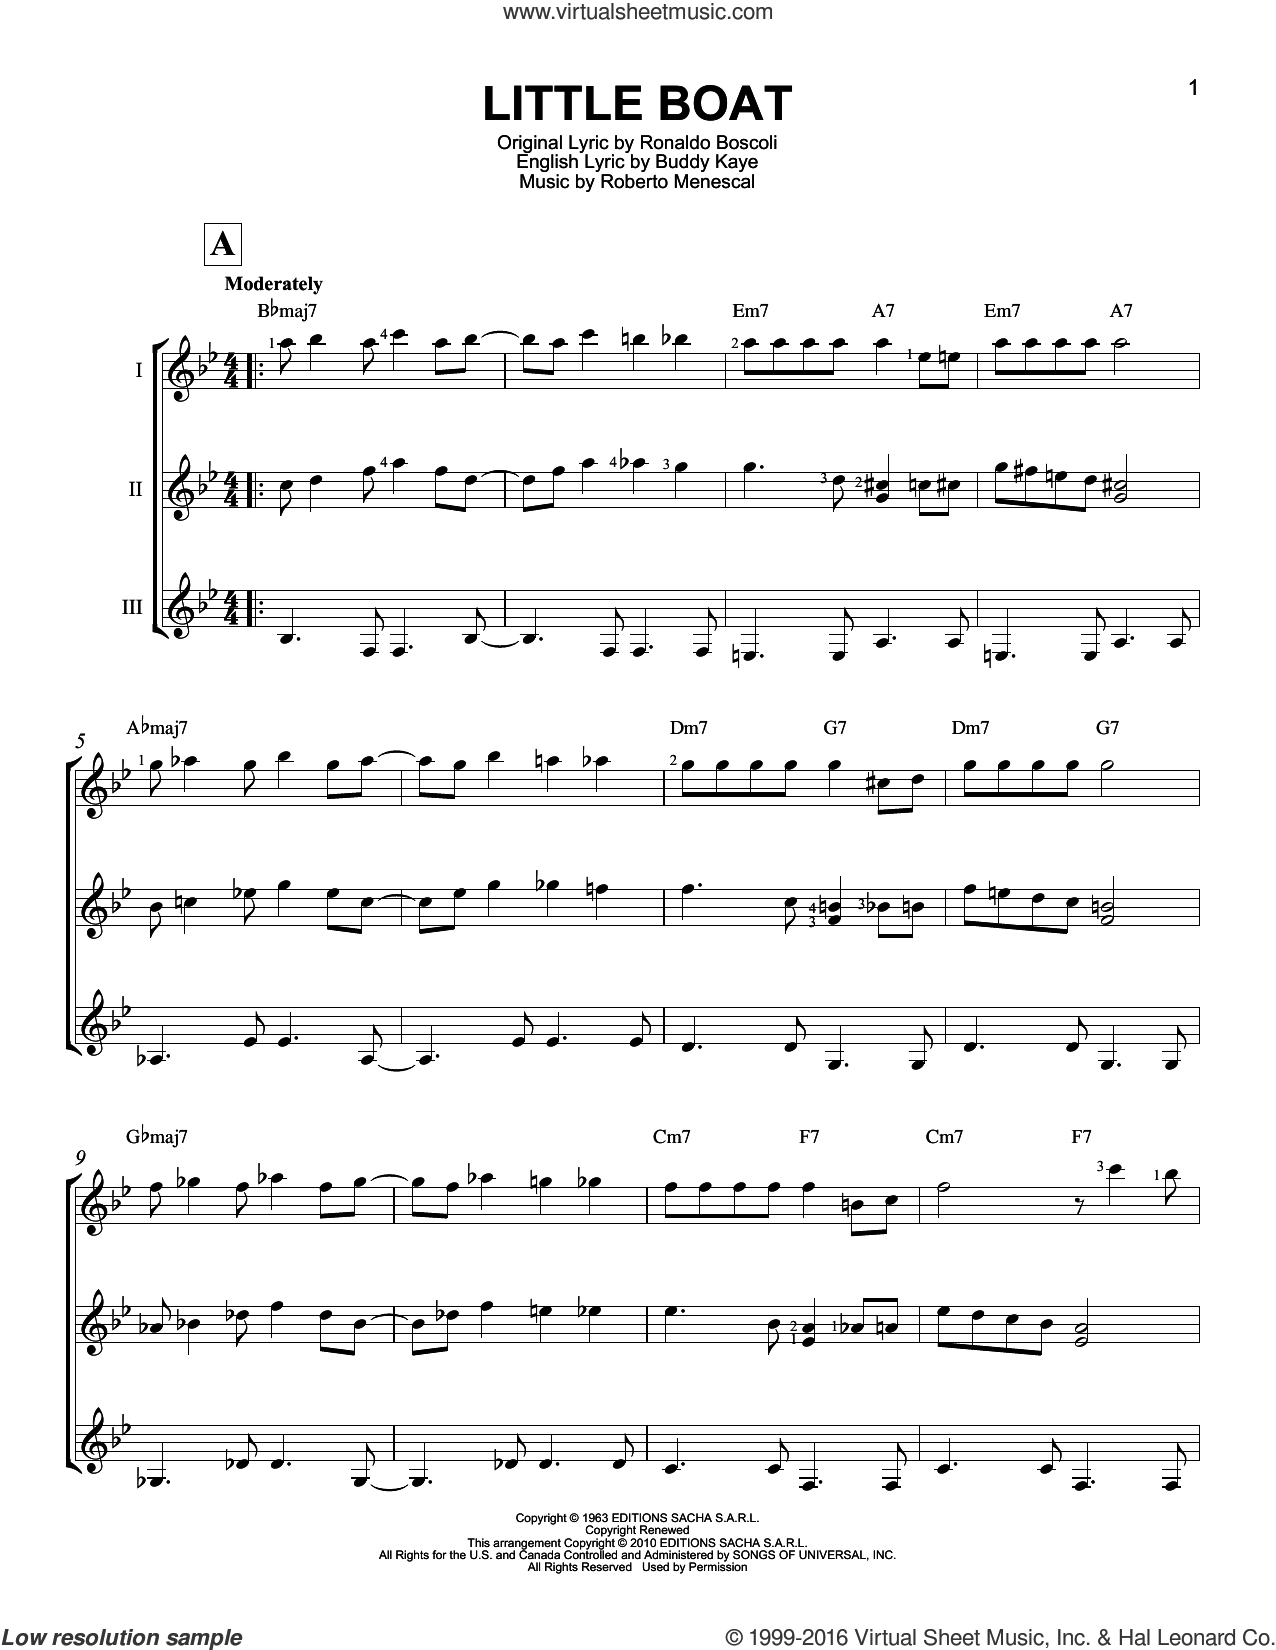 Little Boat (O Barquinho) sheet music for guitar ensemble by Buddy Kaye, Roberto Menescal and Ronaldo Boscoli. Score Image Preview.